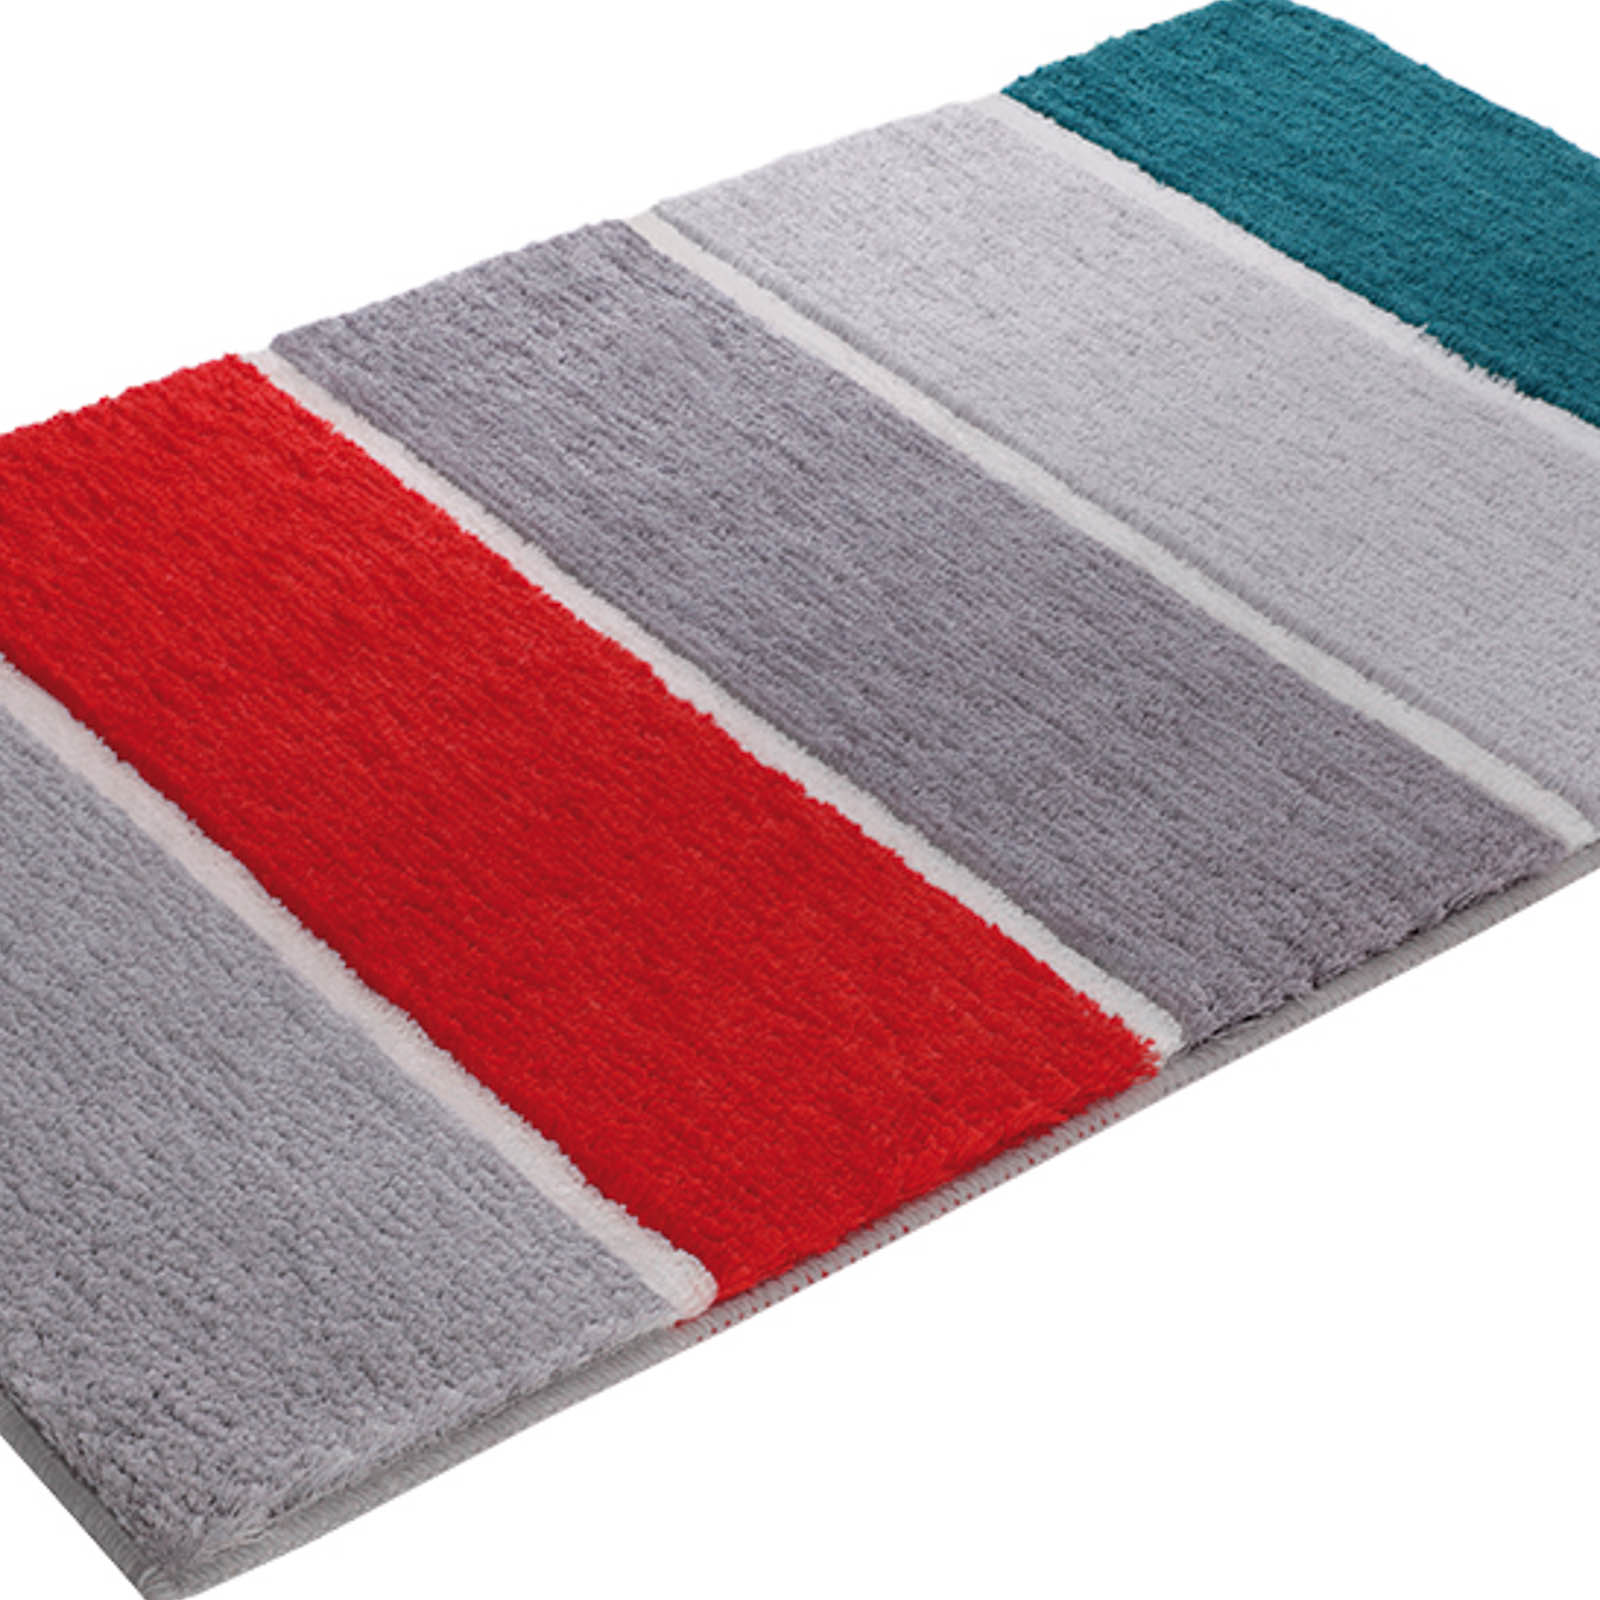 Block Stripe Bath Mats 2372 04 in Grey, Orange and Turquoise